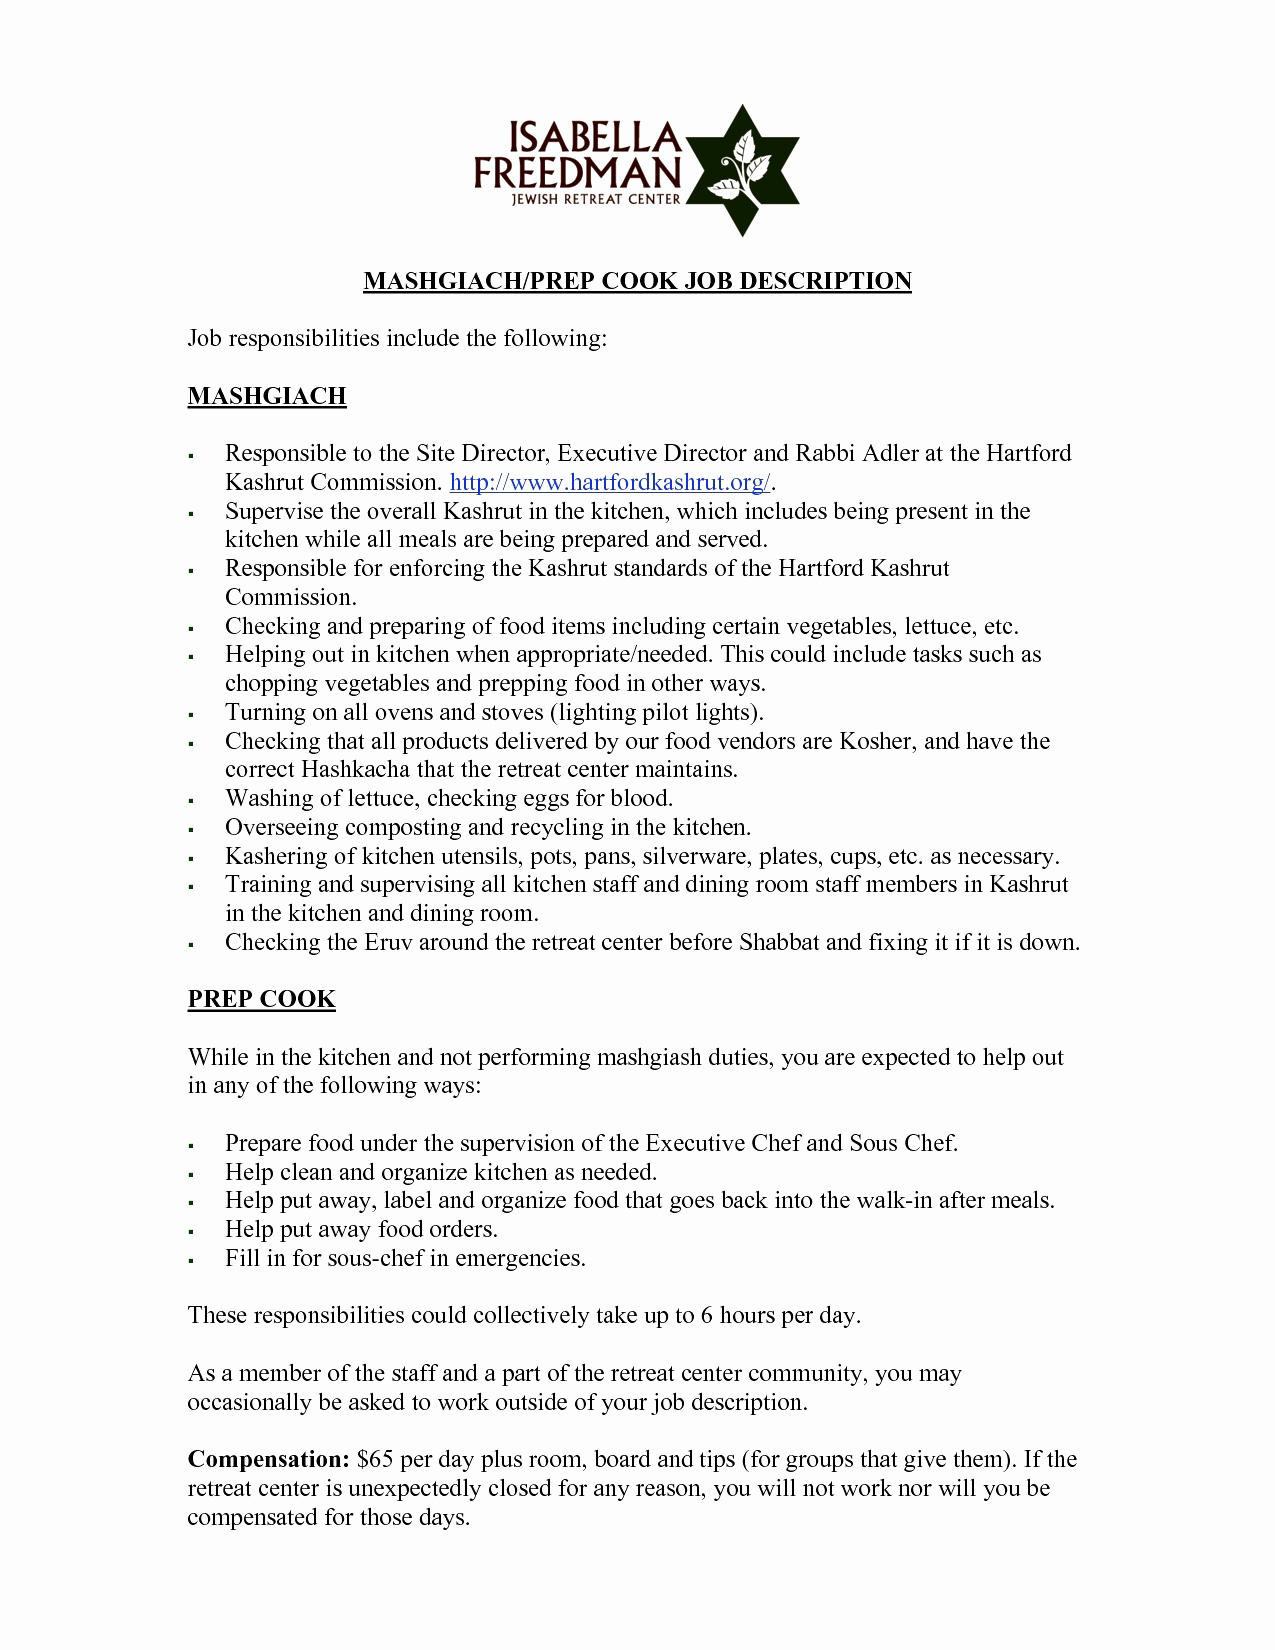 T format Cover Letter Template - Cover Letter Resume format Awesome Resume and Cover Letter Template